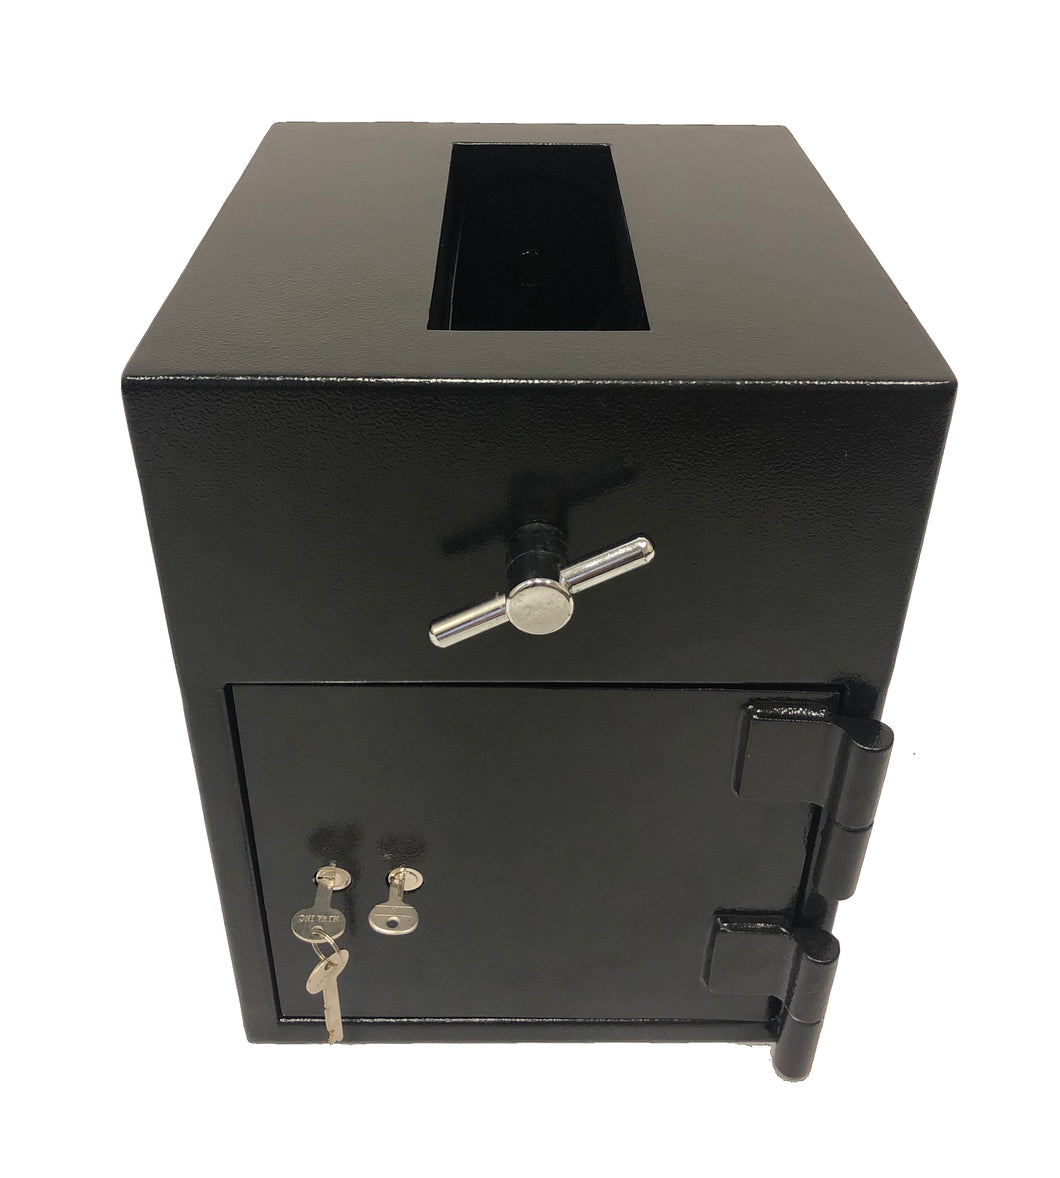 SOUTHEASTERN RH1612K Top Loading Drop Slot Depository Safe with dual key lock